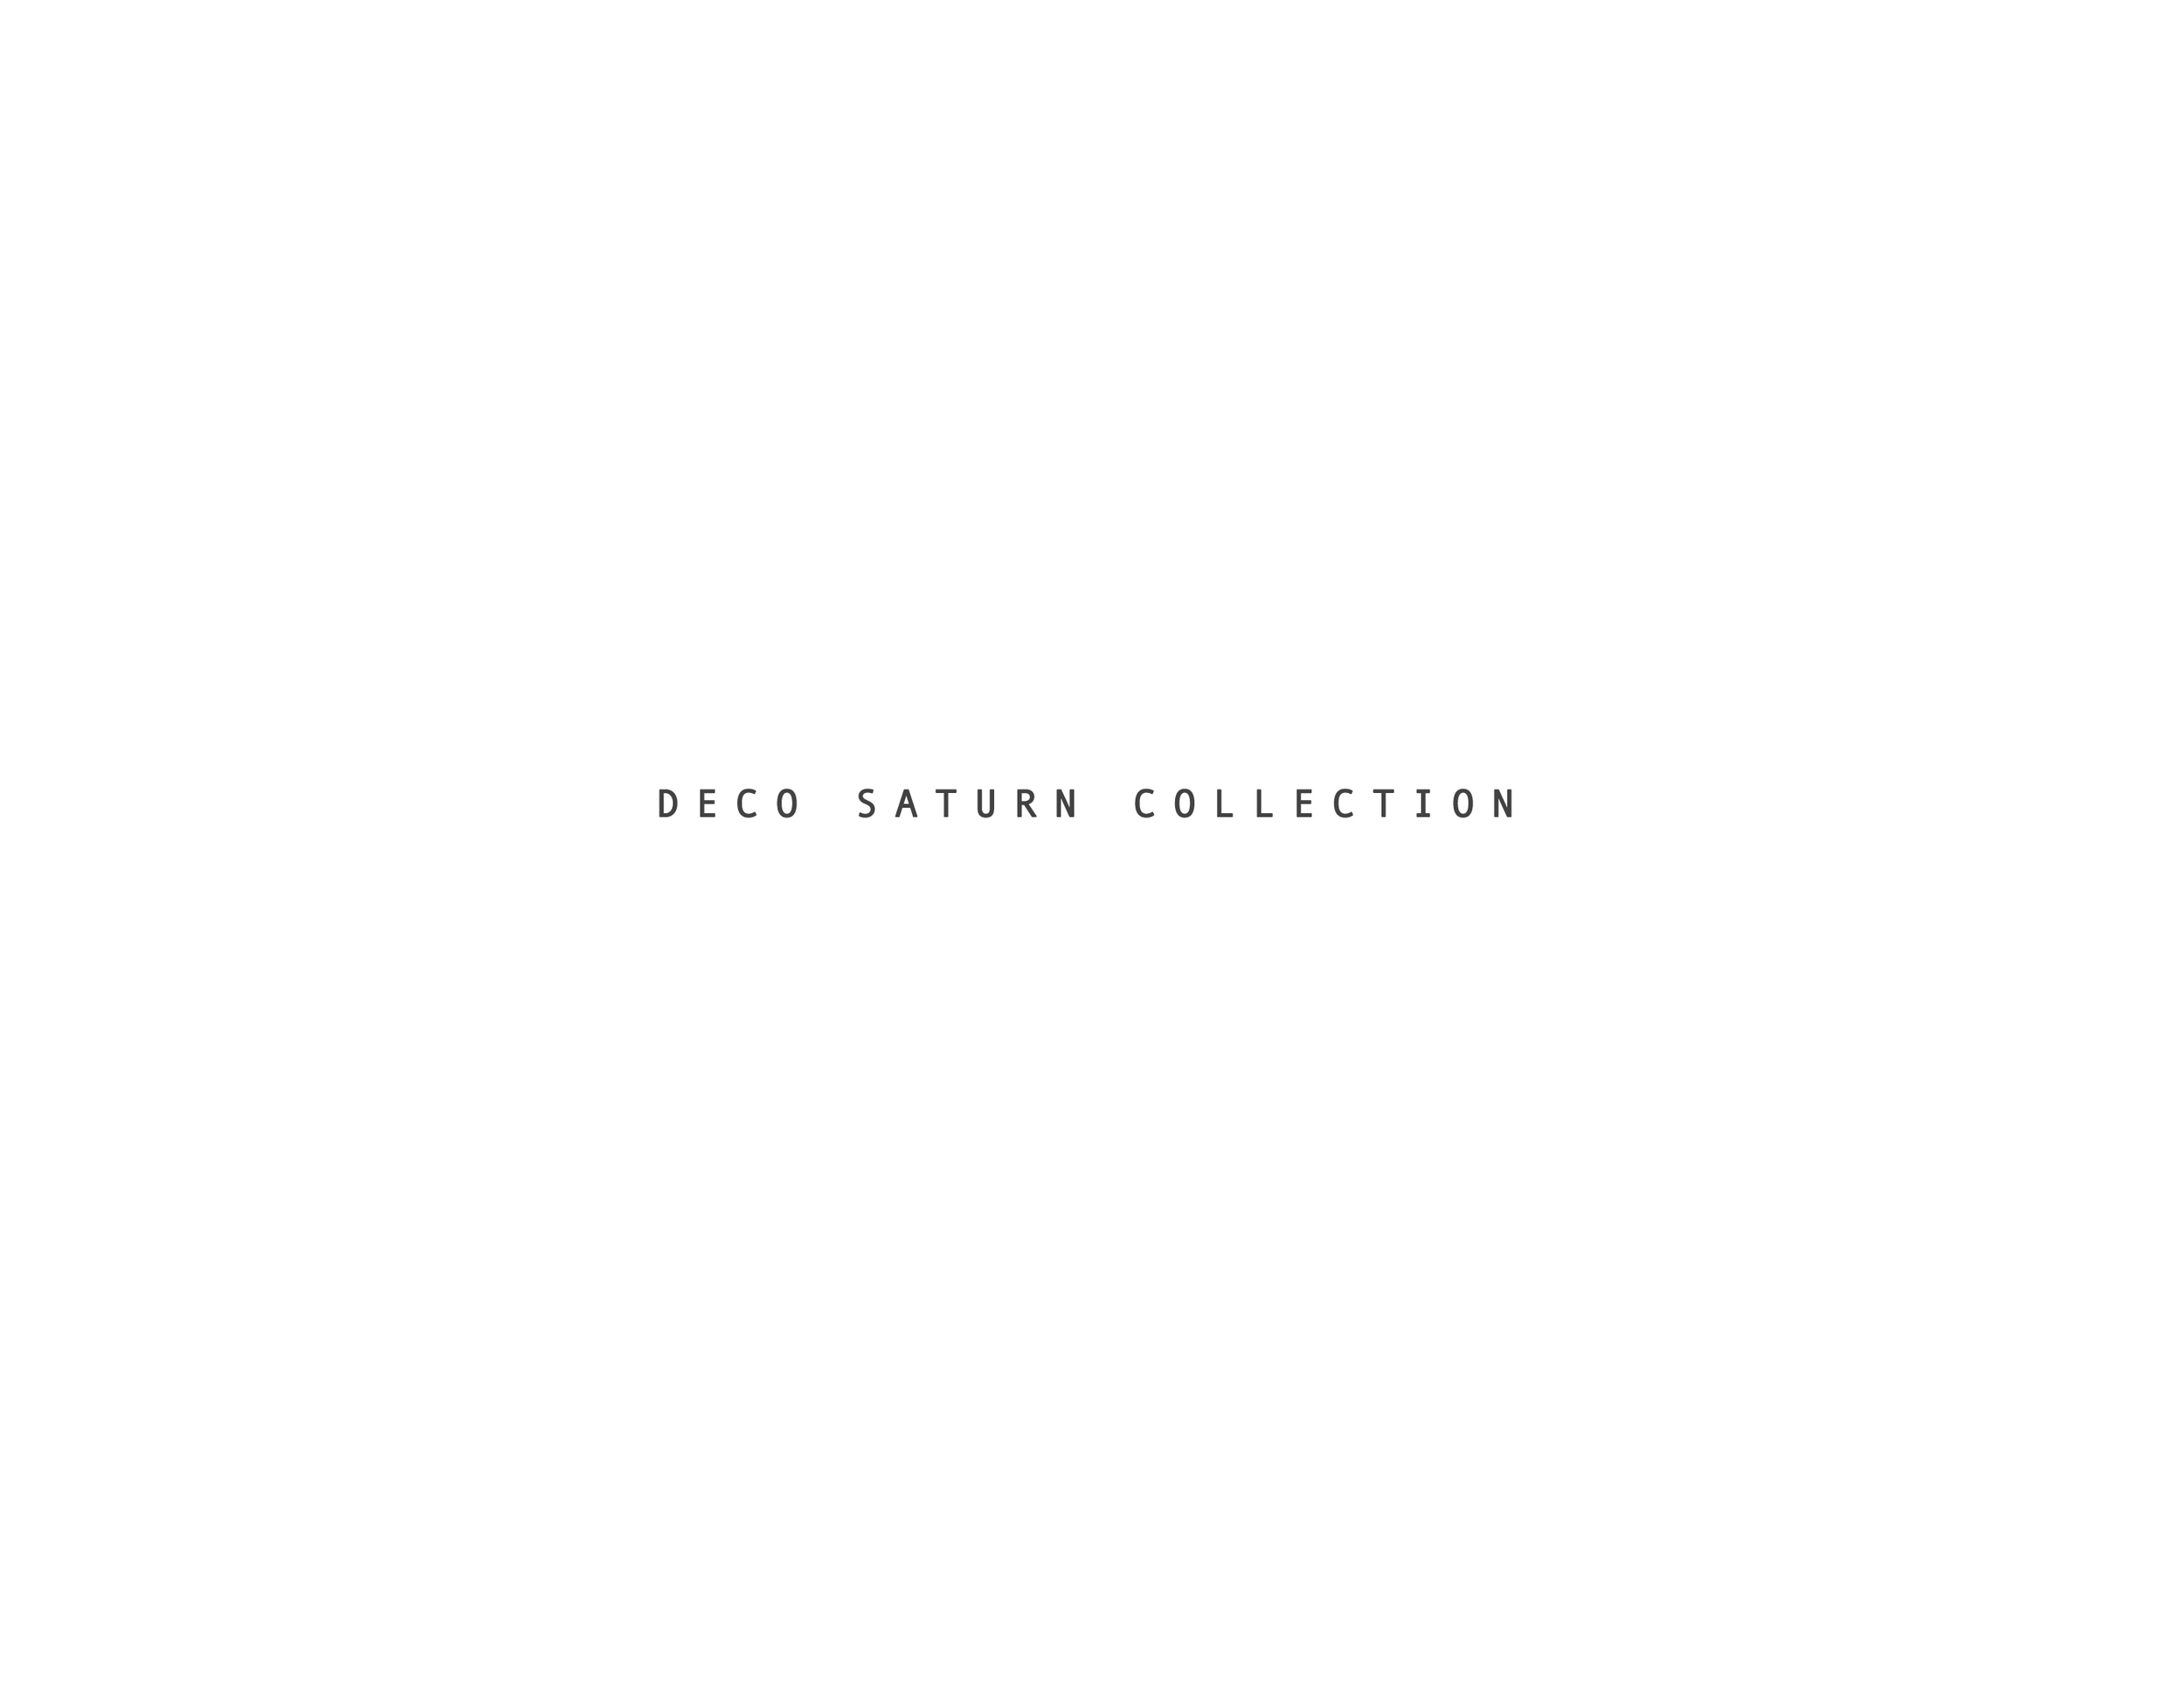 DecoSaturnCollection.jpg